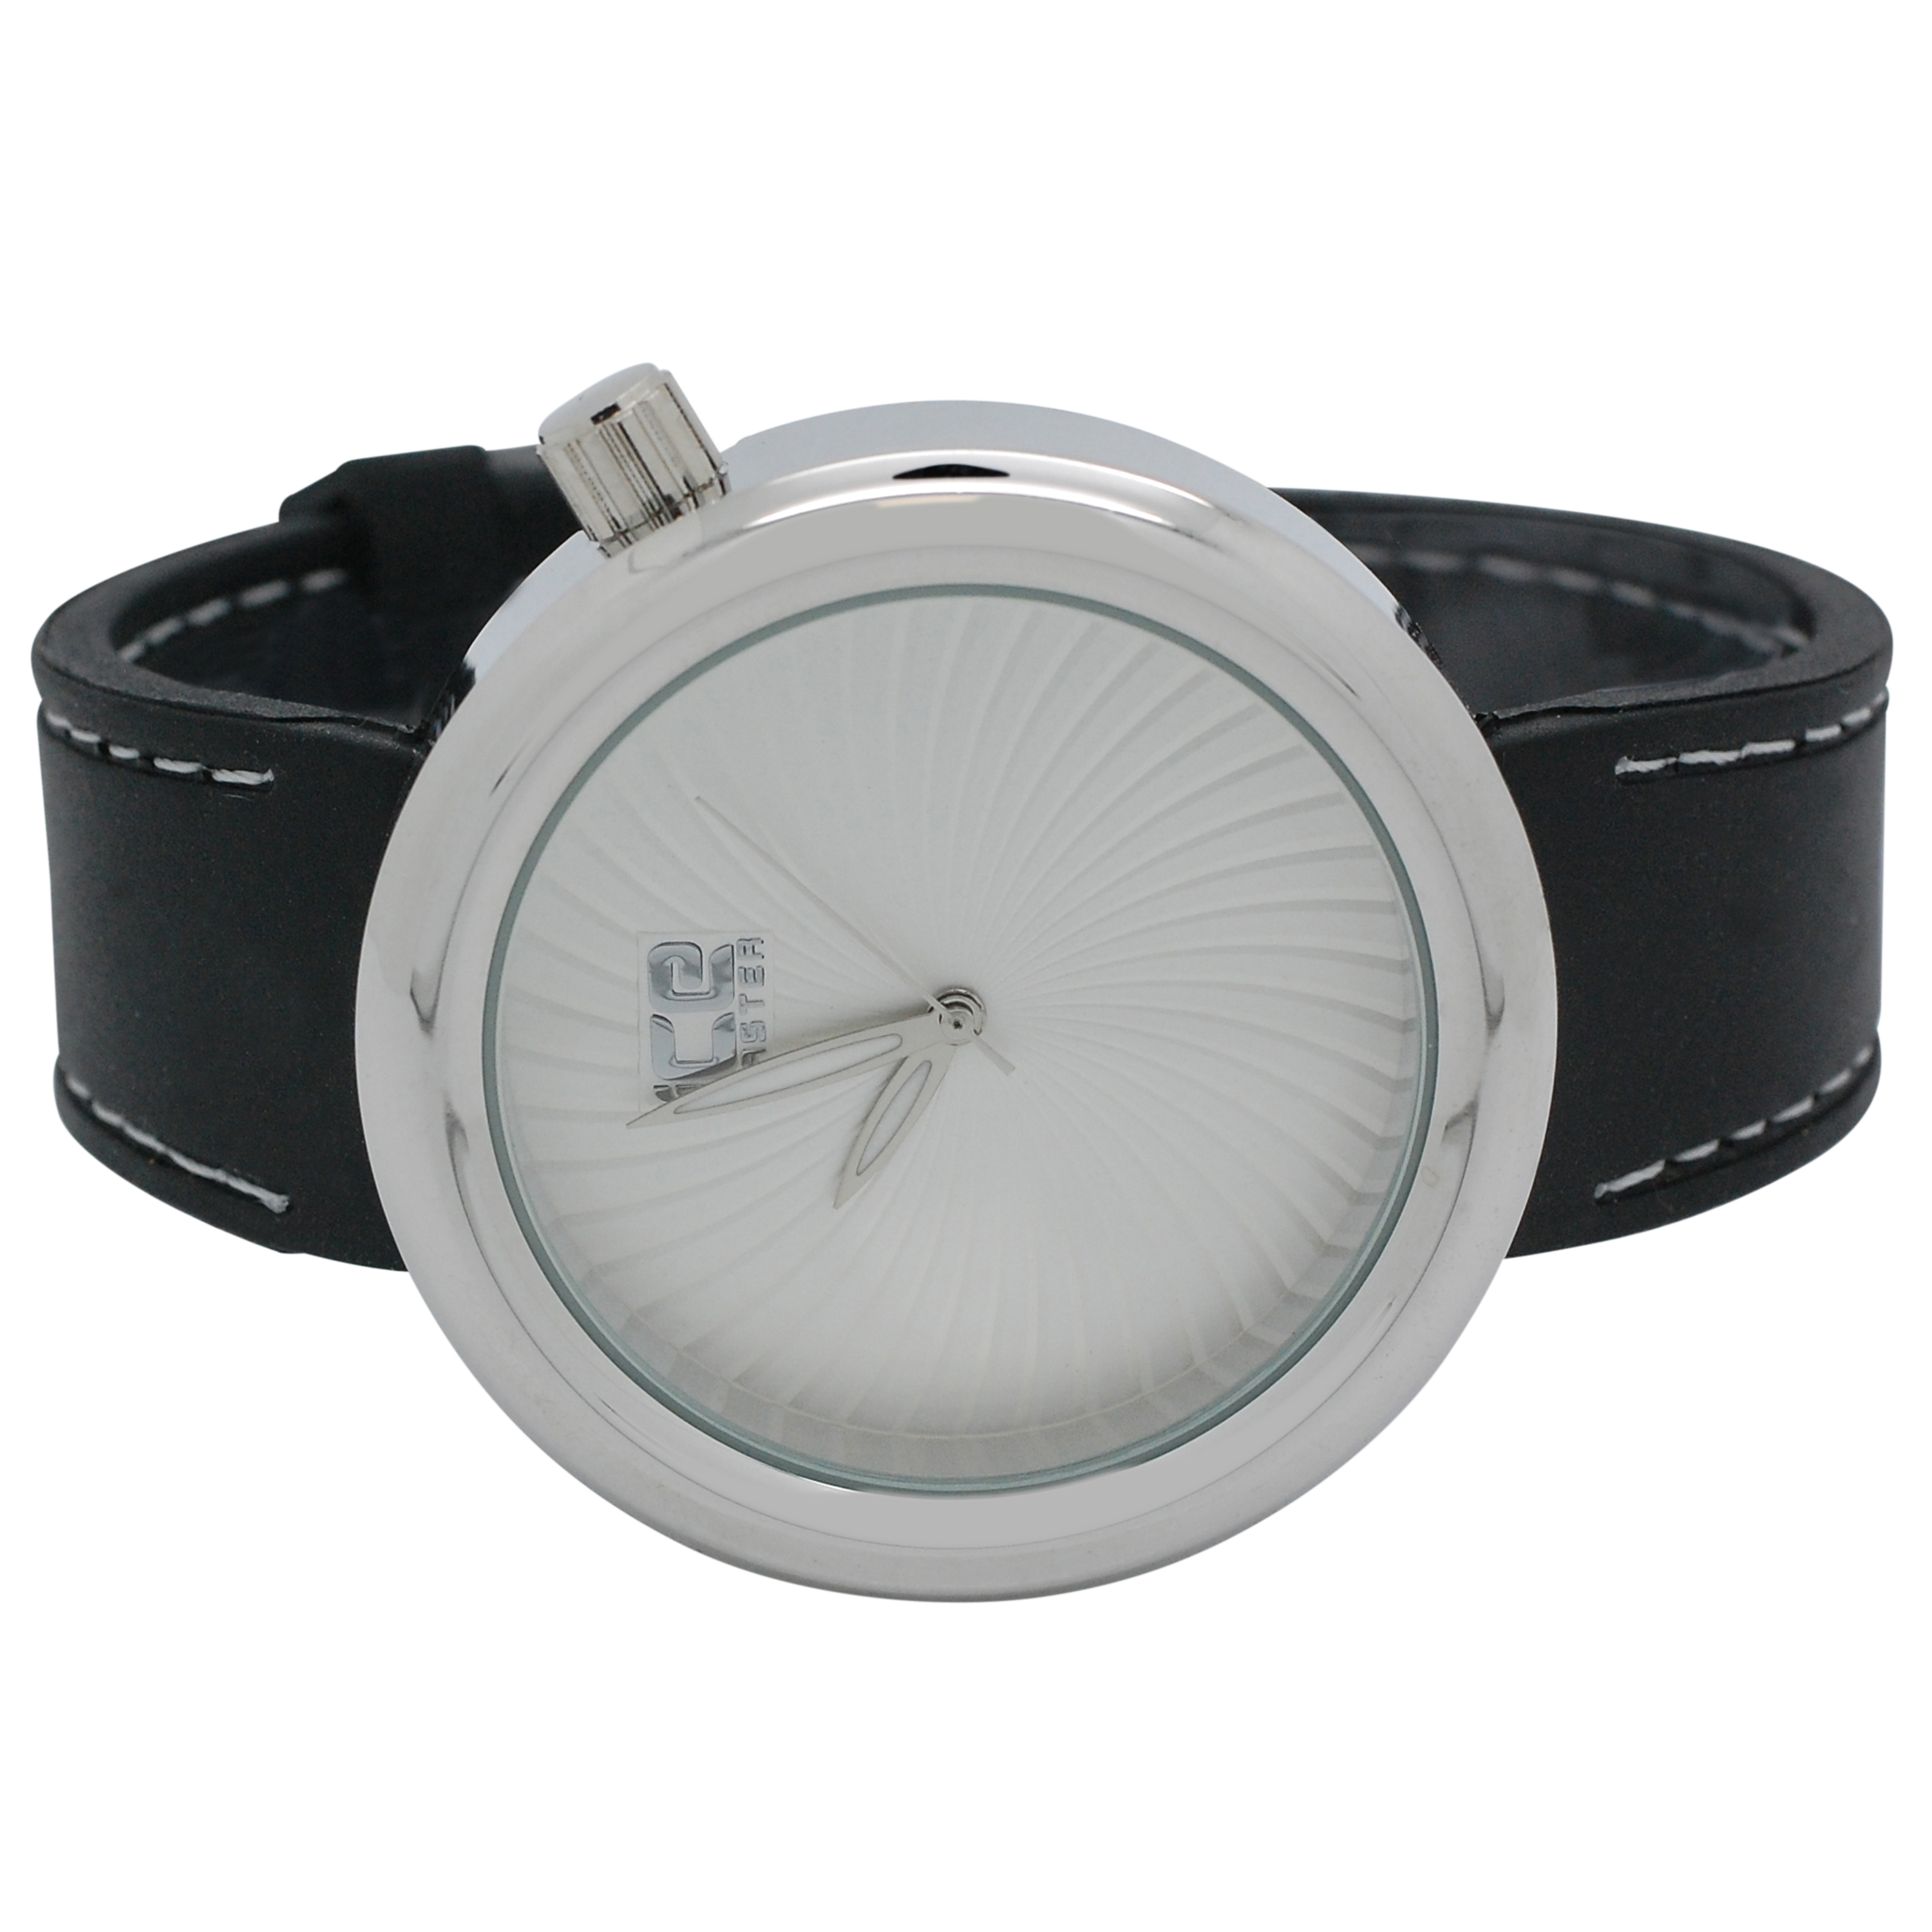 Mens Techno Ice Master Full Wavy Swirl Silver Dial with Black Band Watch